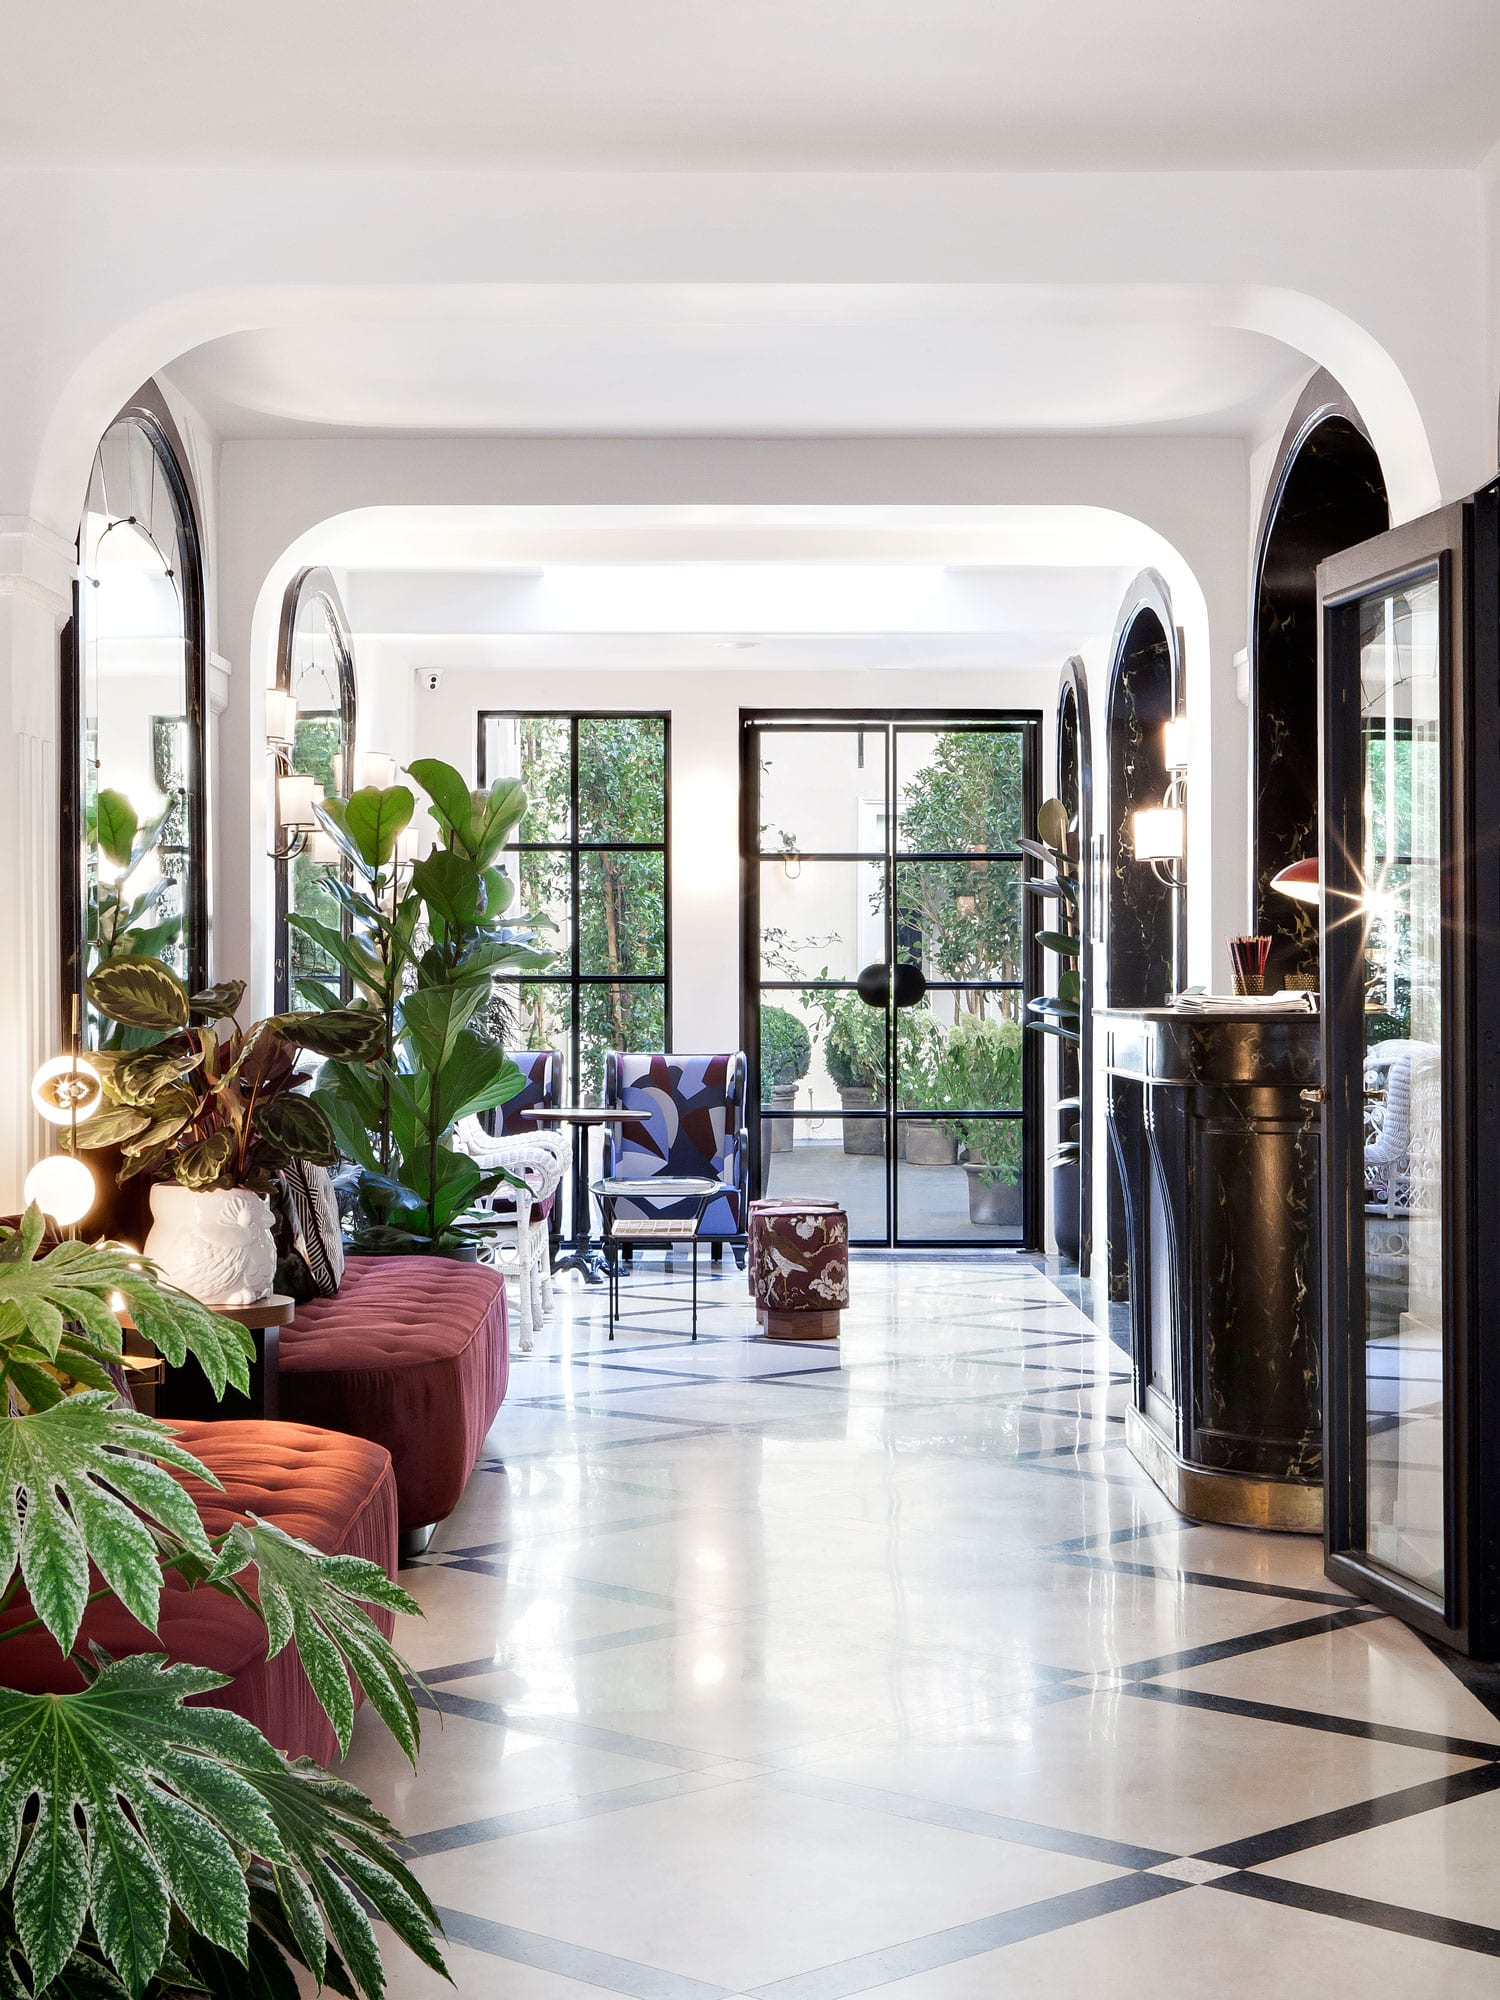 Hotel bienvenue paris france designed by chlo negre for Hotel design paris 7